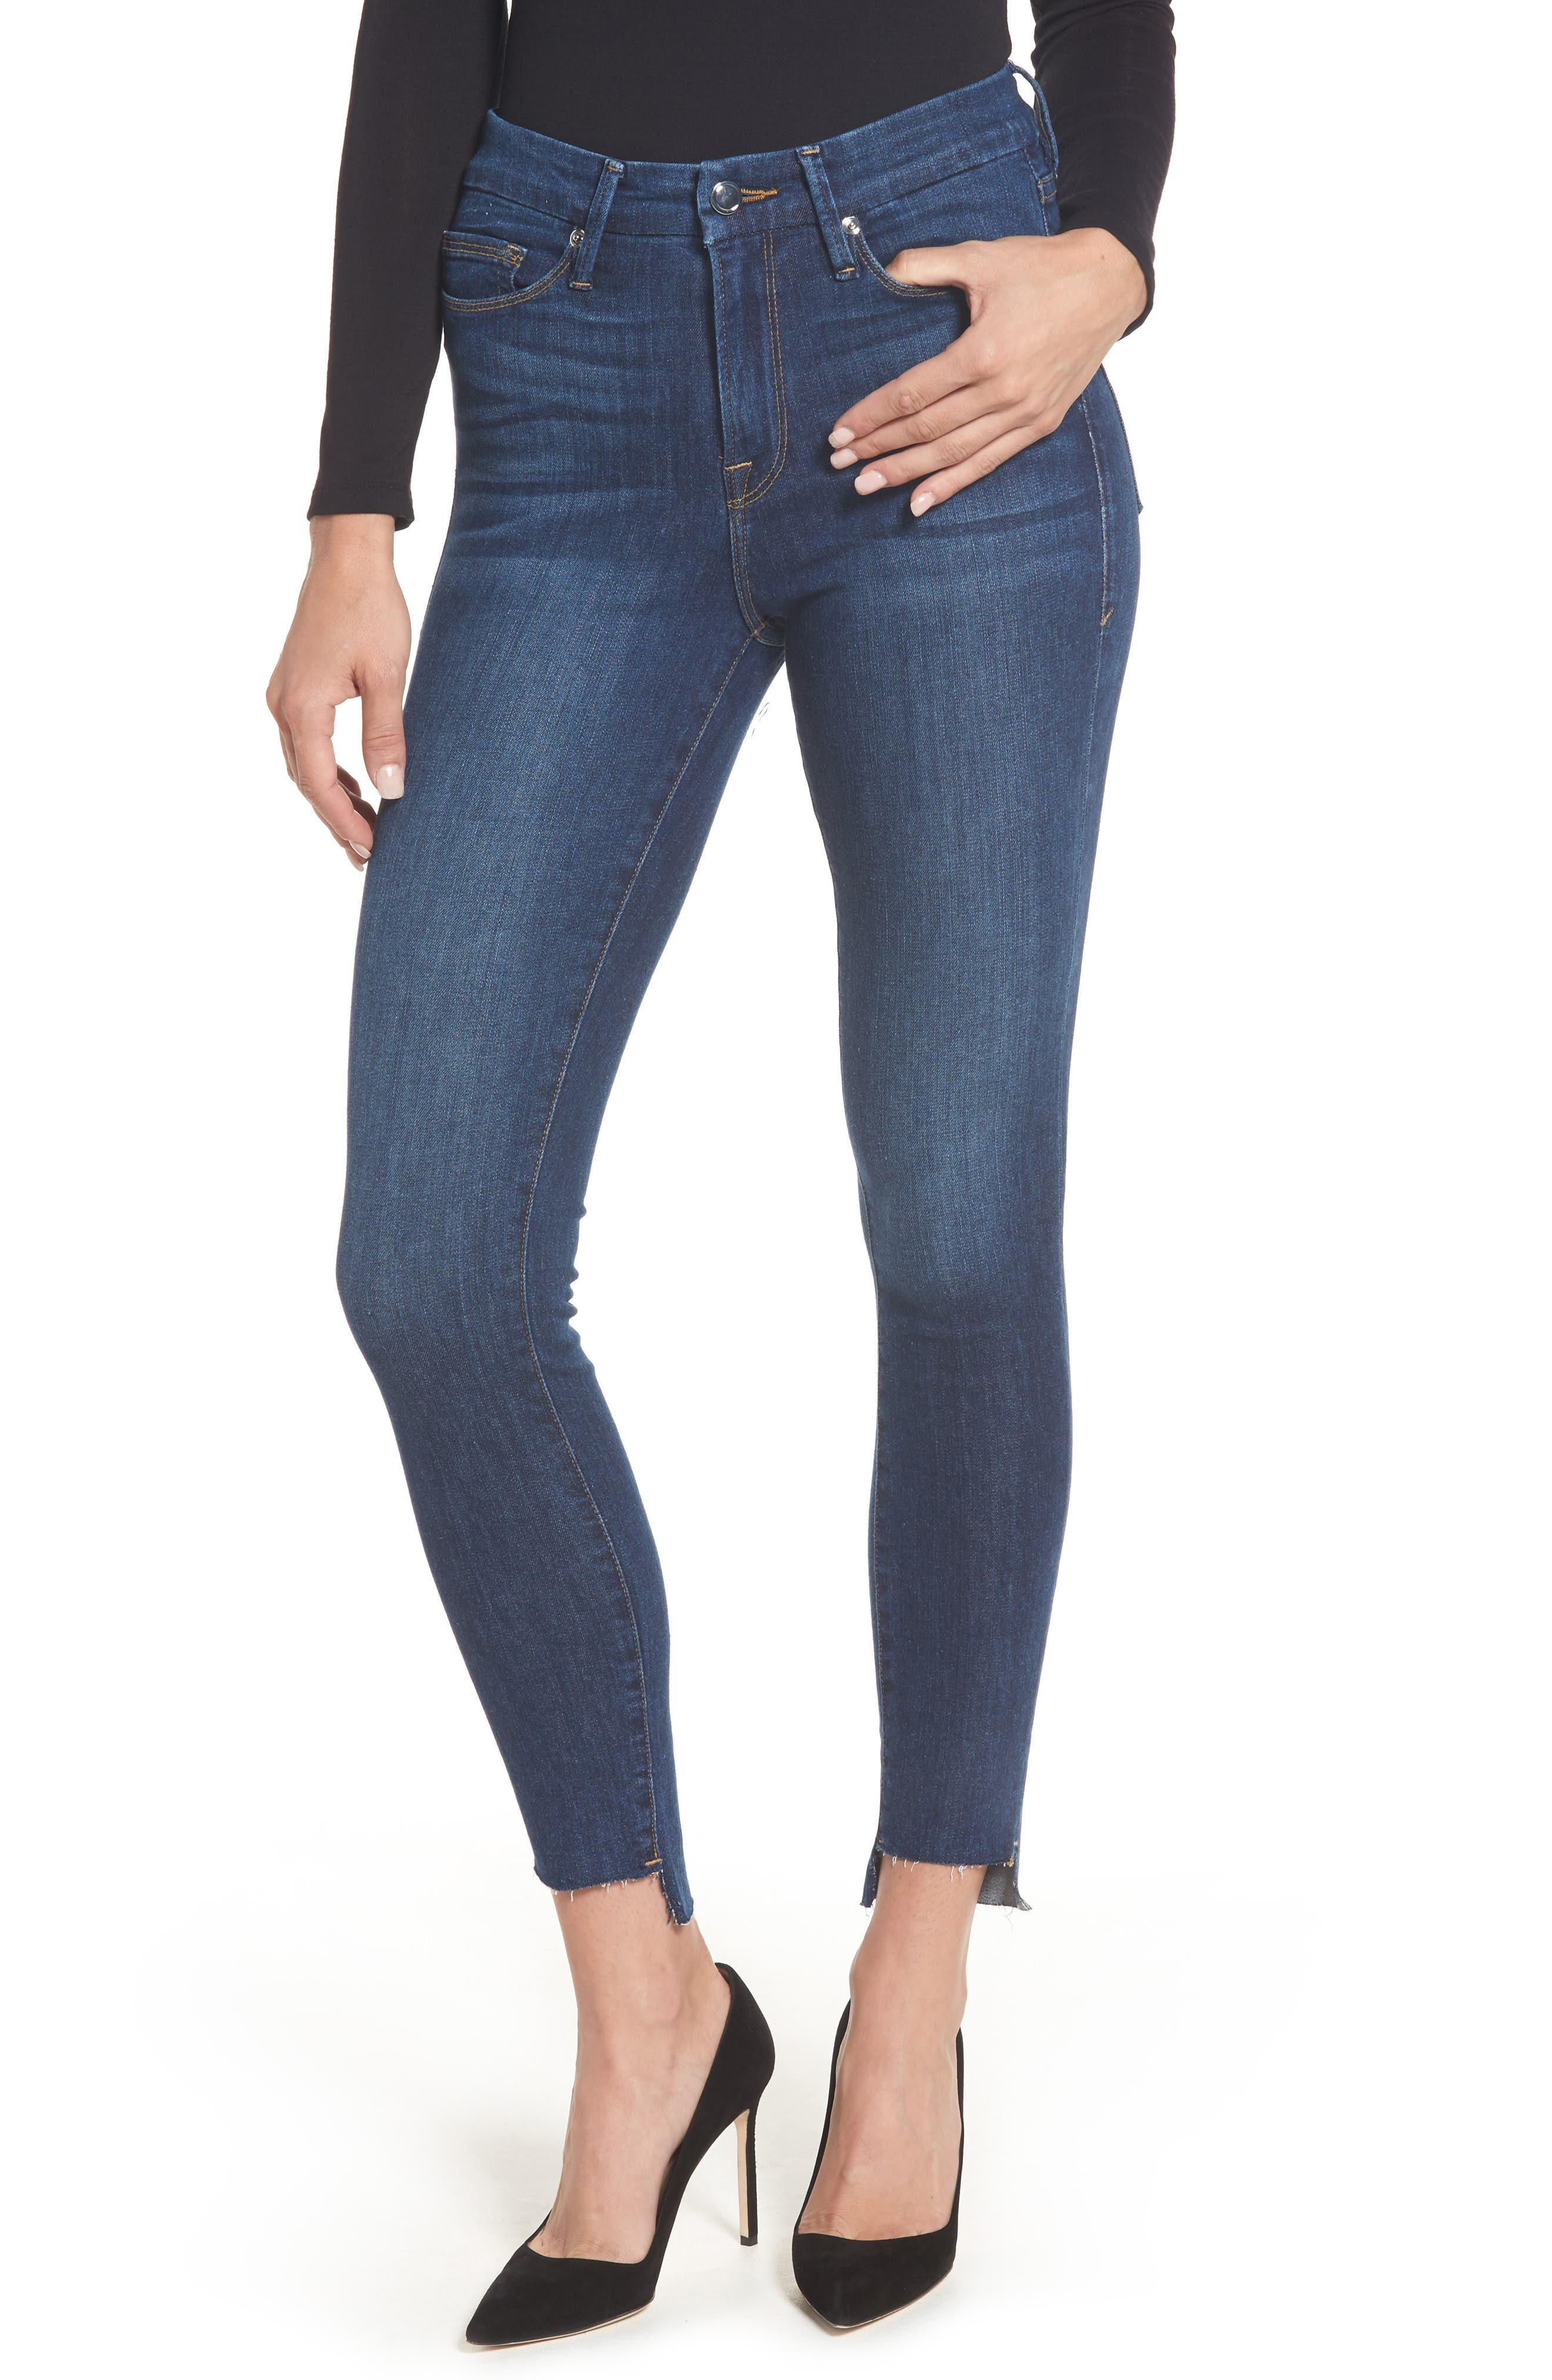 Alternate Image 1 Selected - Good American Good Legs High Waist Skinny Jeans (Blue 046) (Extended Sizes)